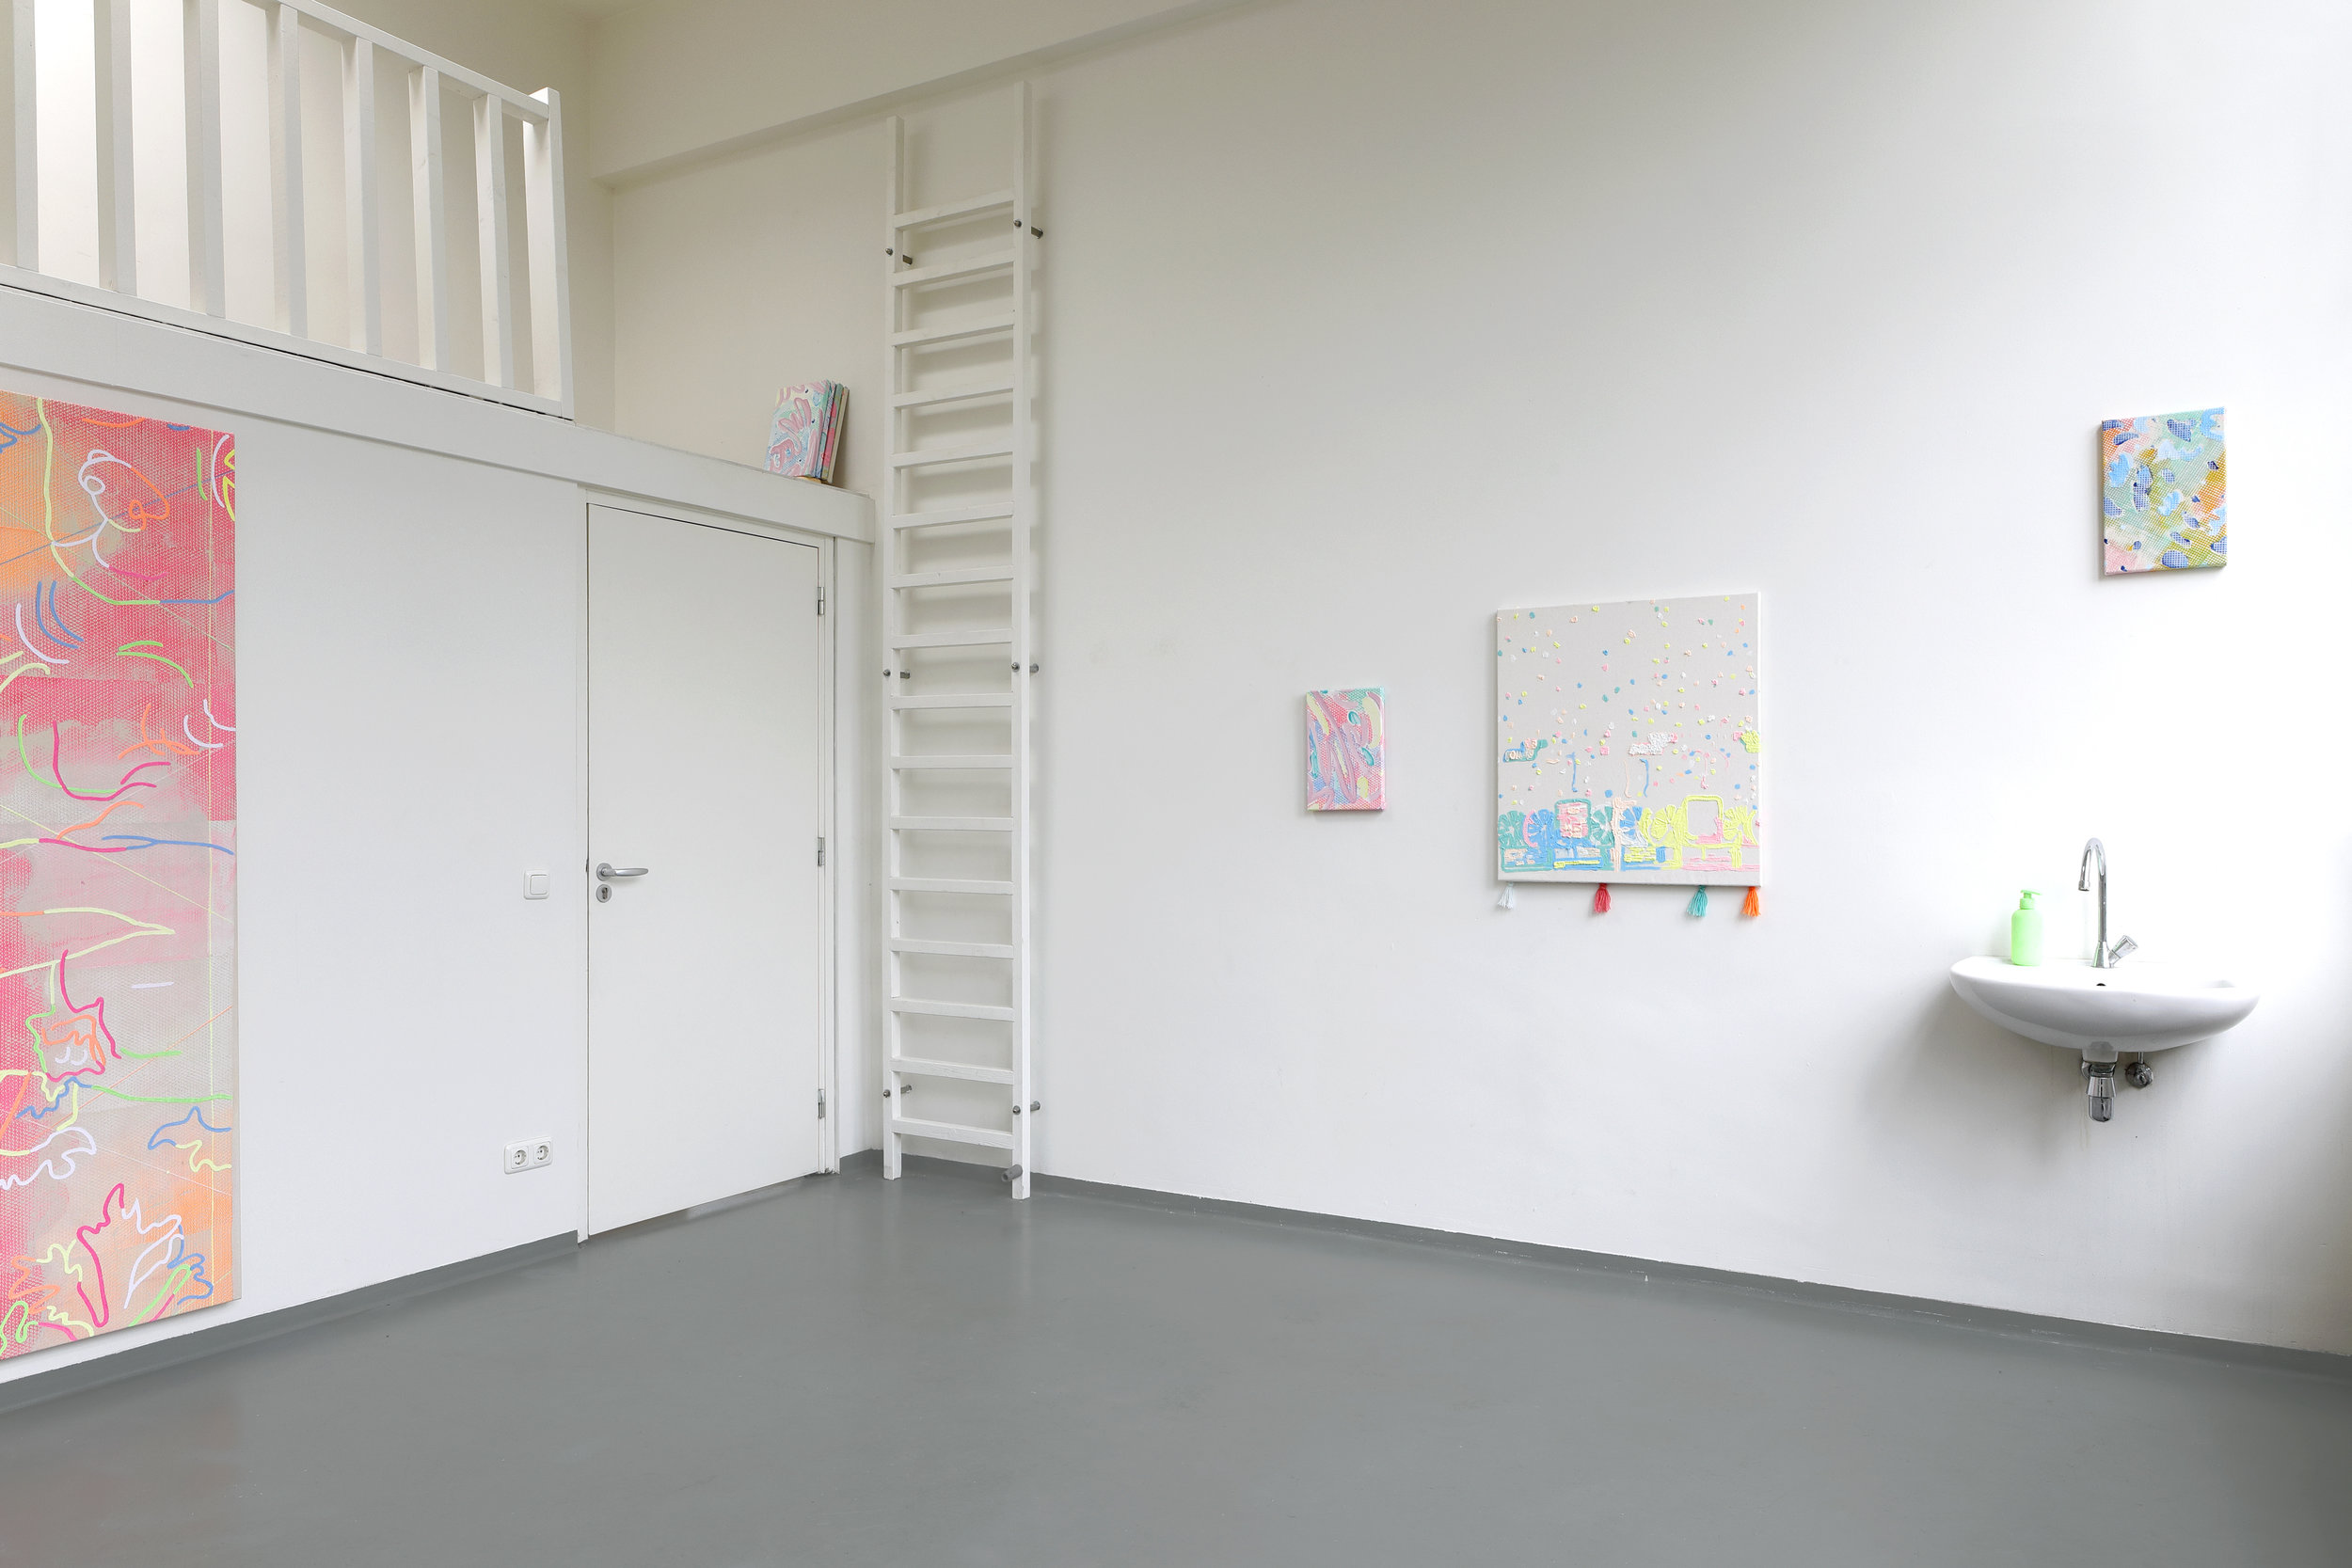 Exhibition view, various measurements, Van Eyck Open Studio's 2019